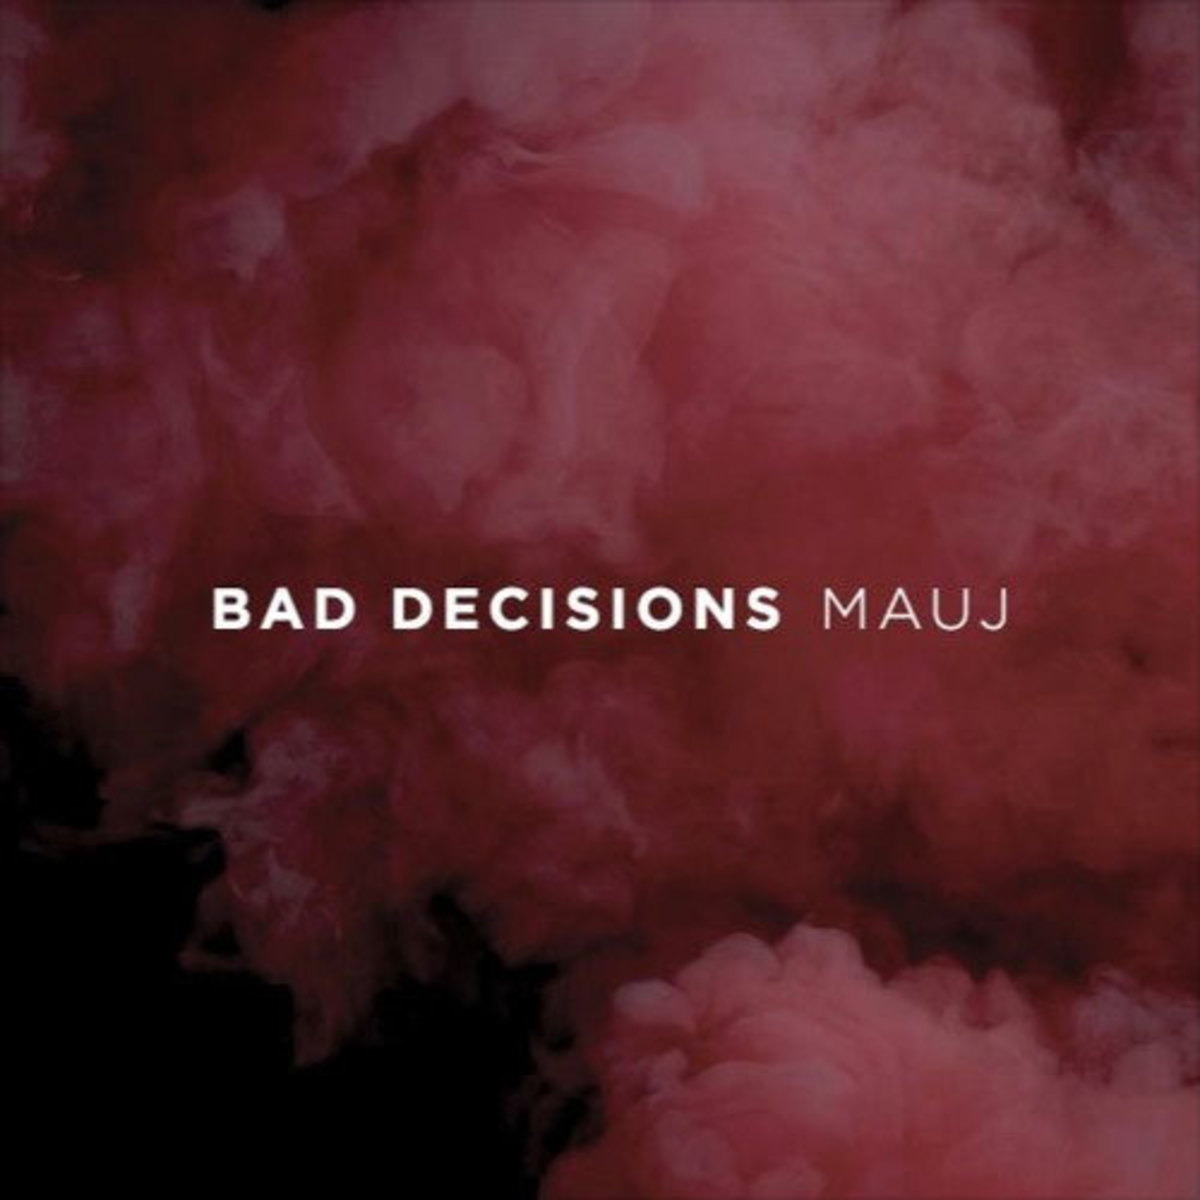 mauj-bad-decisions.jpg